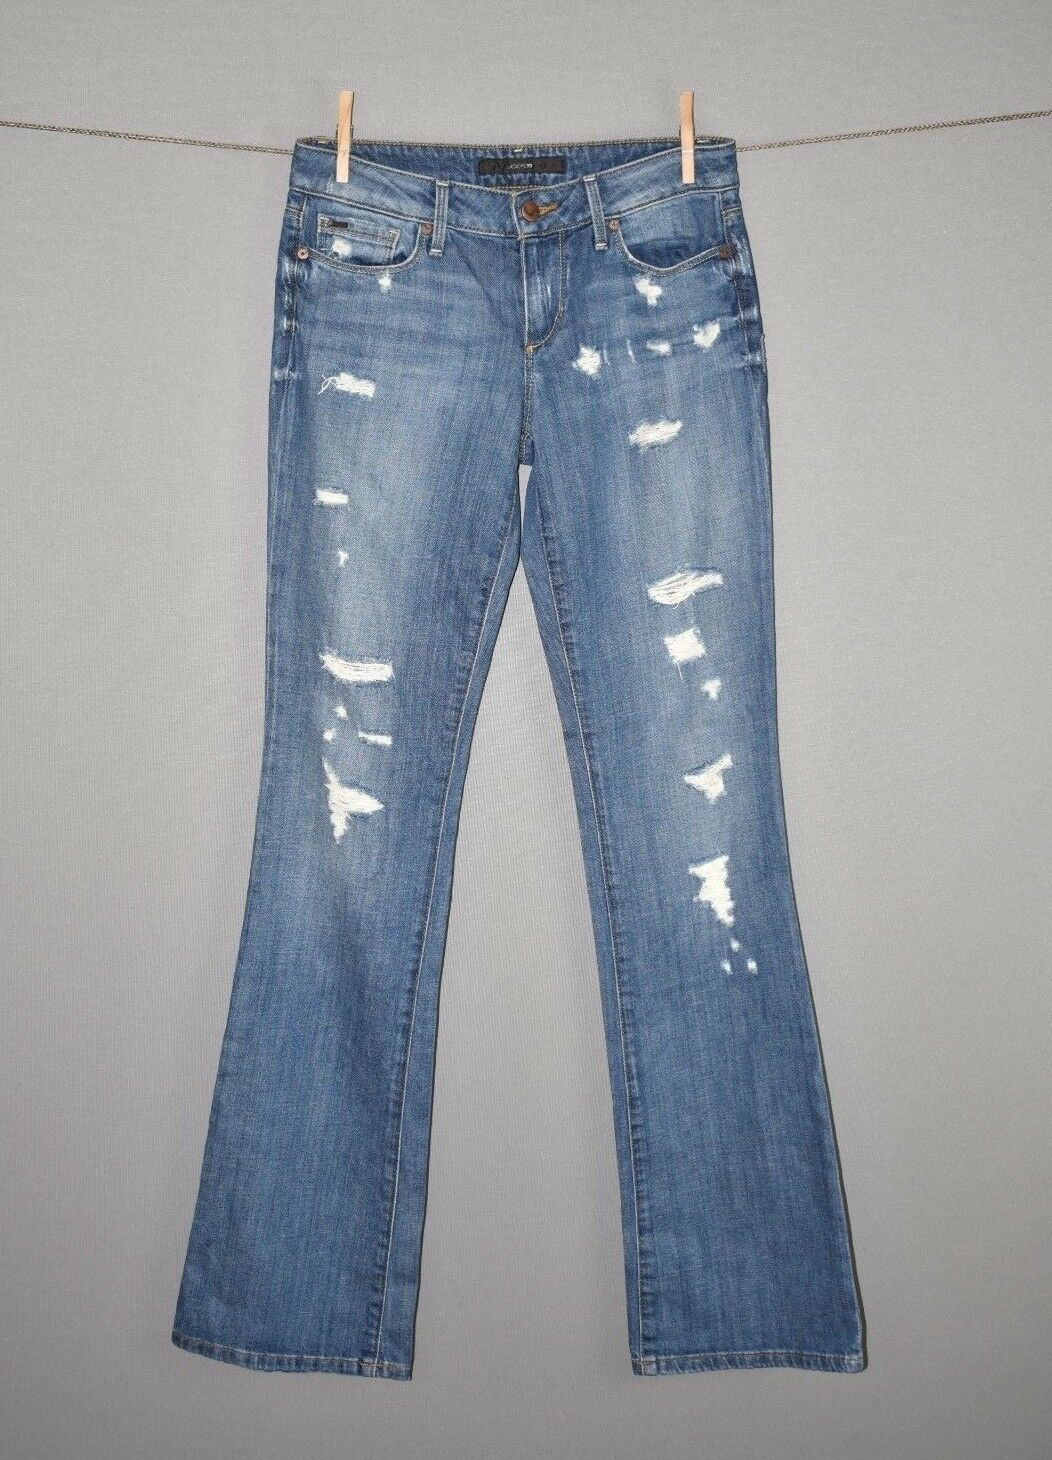 JOE'S JEANS NEW  178 Destroyed Ripped Curvy Honey Boot Cut Denim Jean Size 27